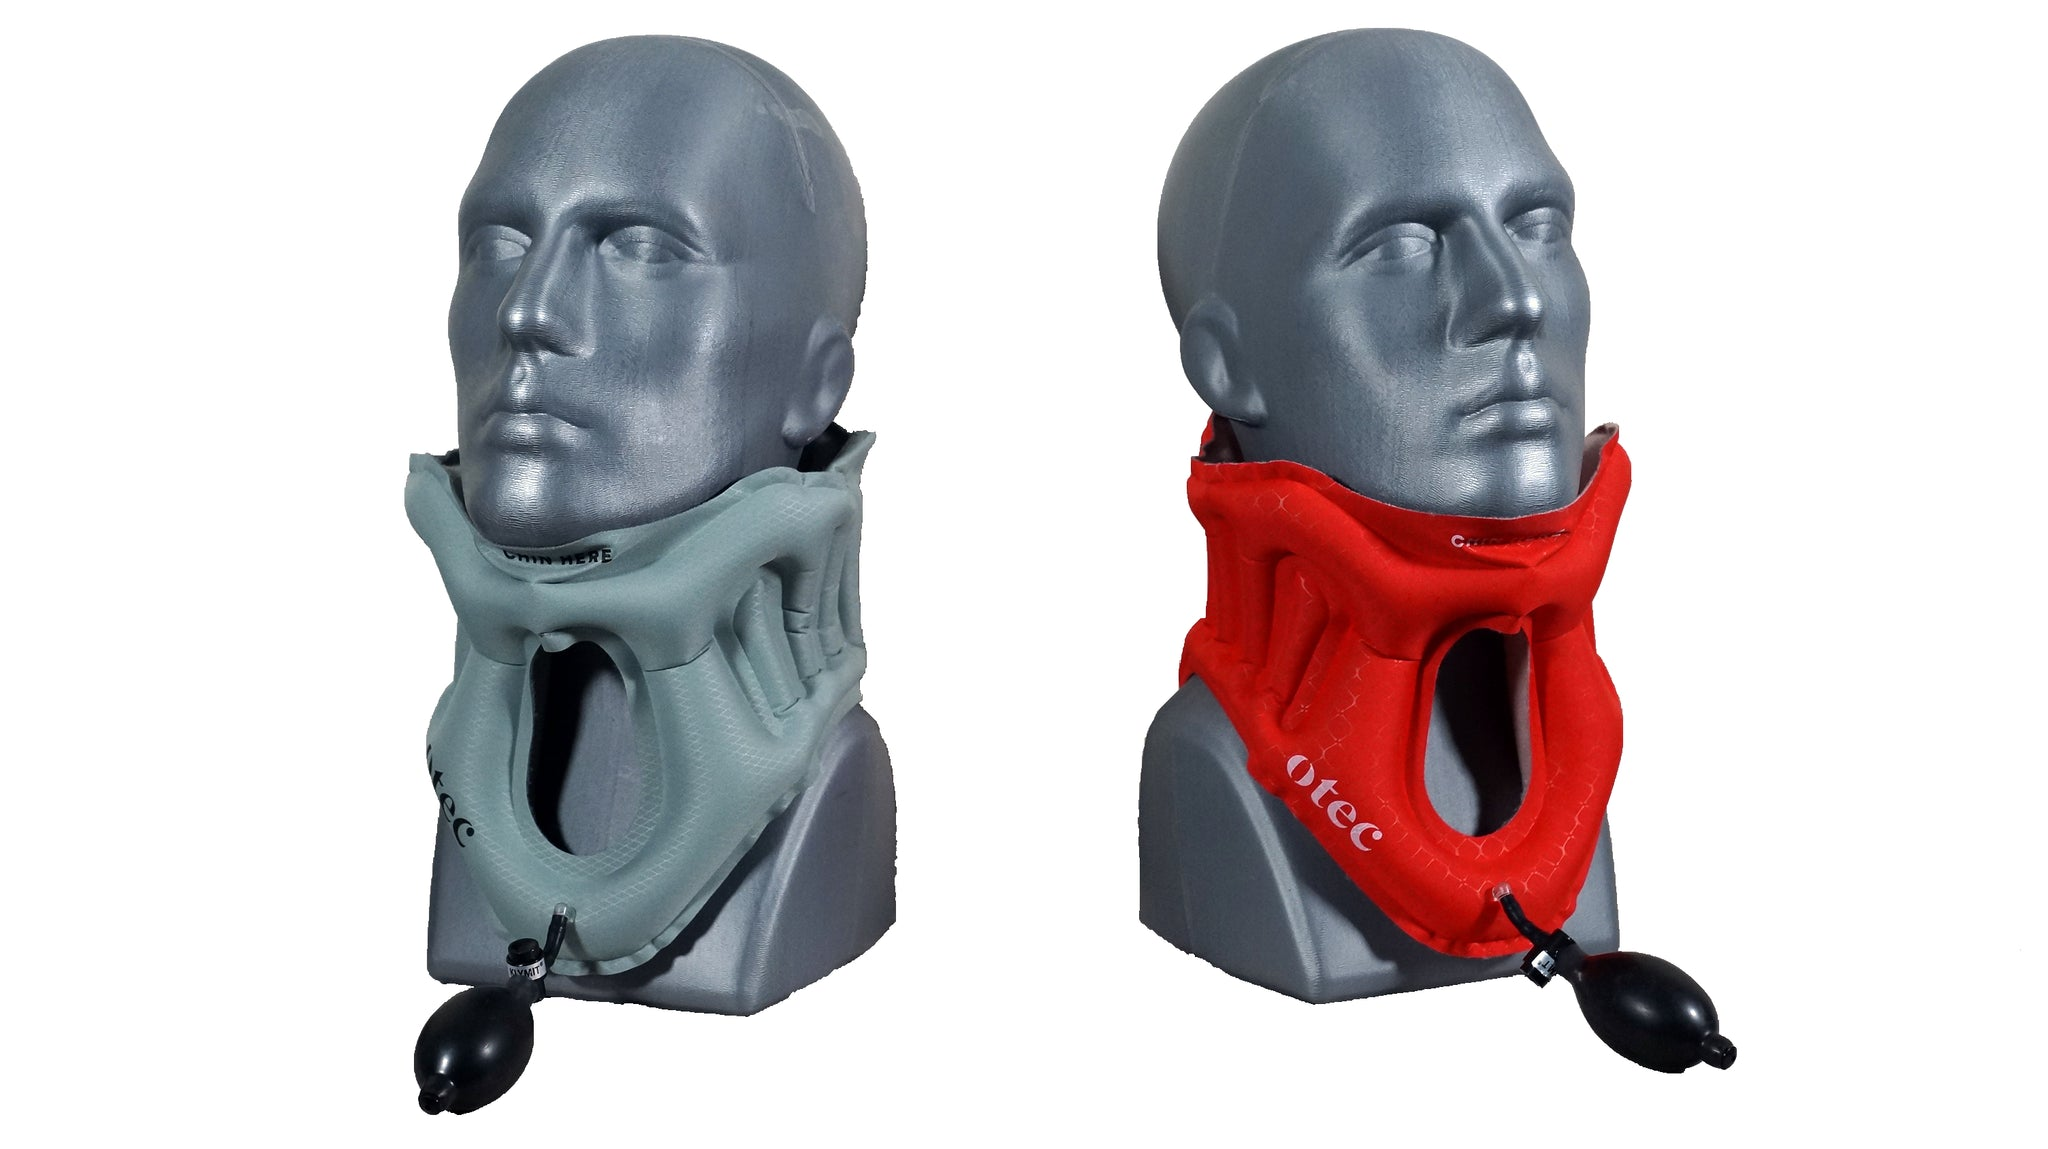 Inflated AER Cervical Collar in gray and red